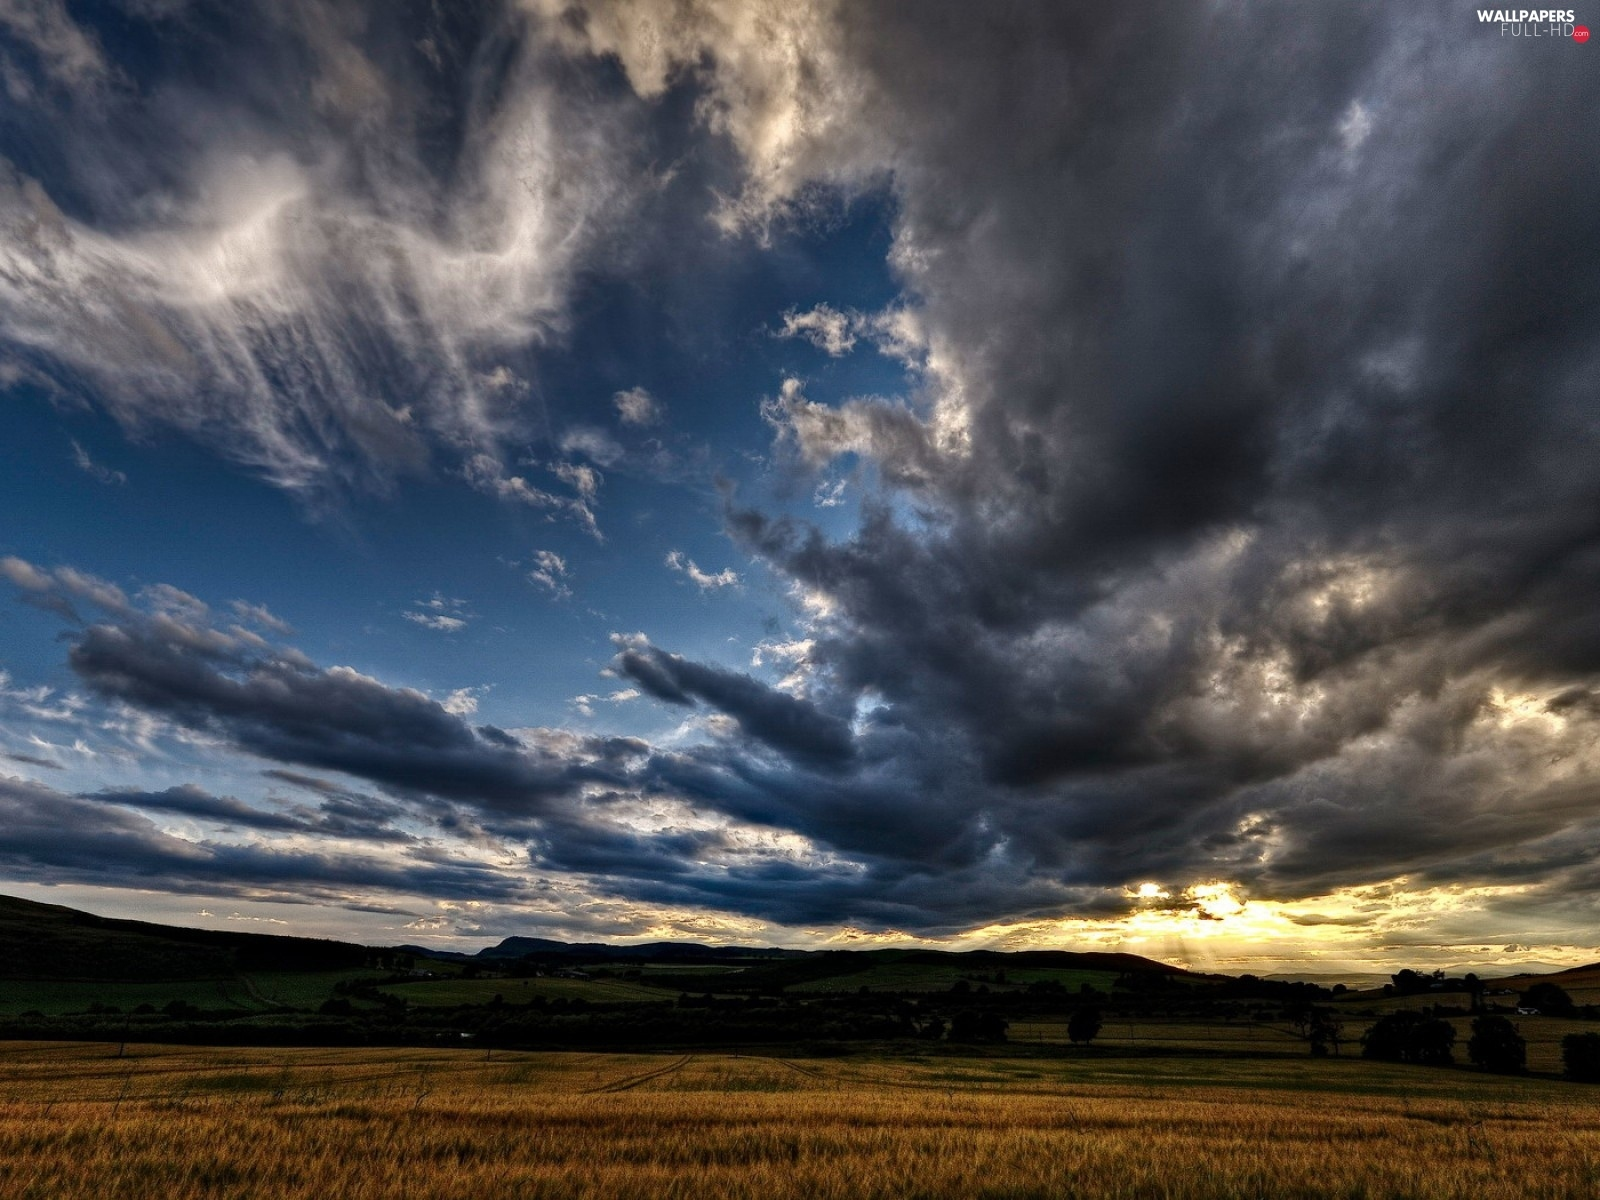 Sky, clouds, Field